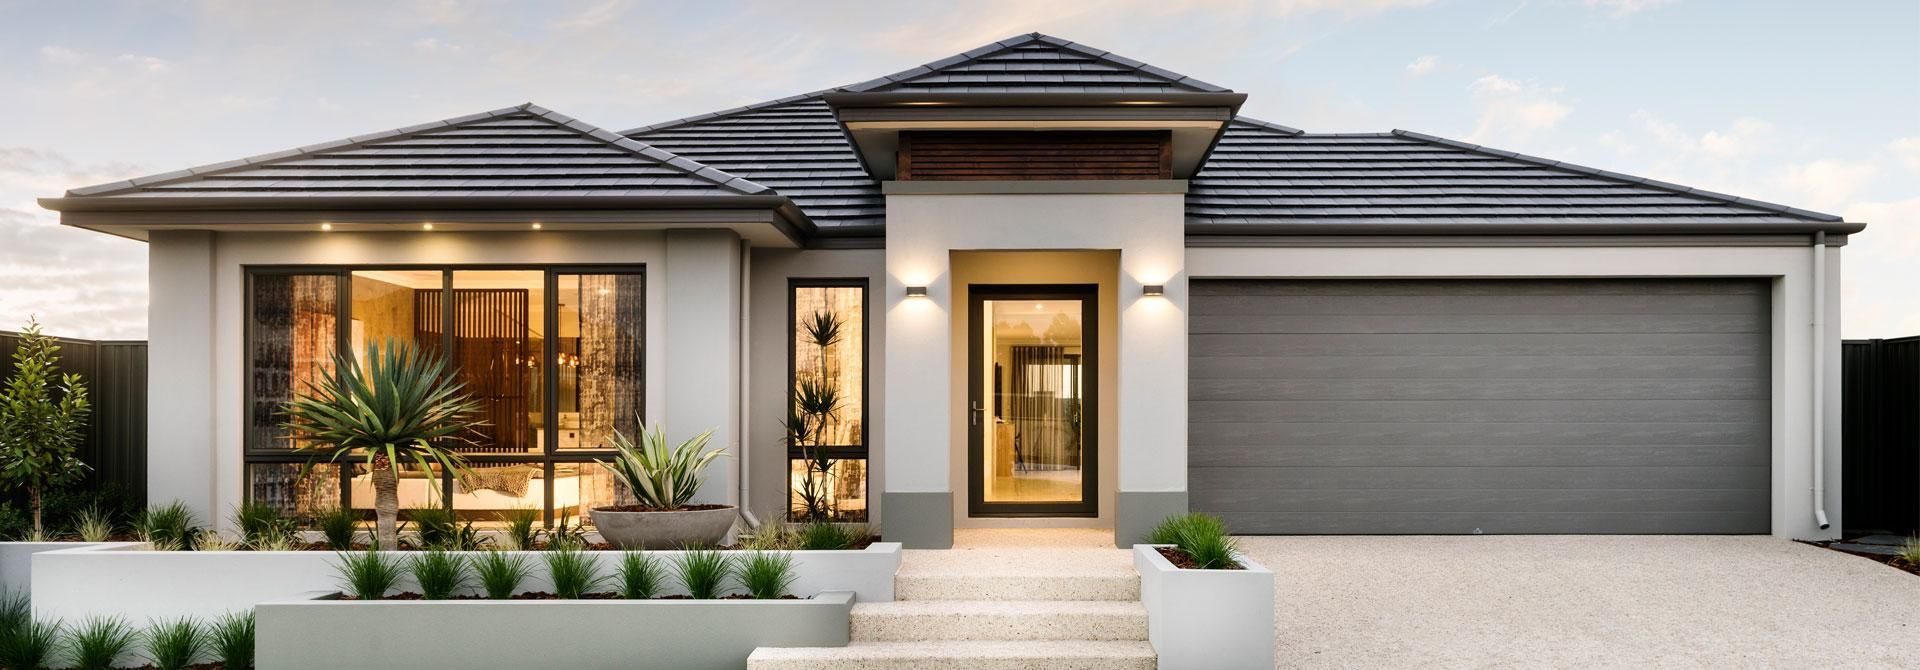 Affinity I Dale Alcock Homes House Plans In 2019